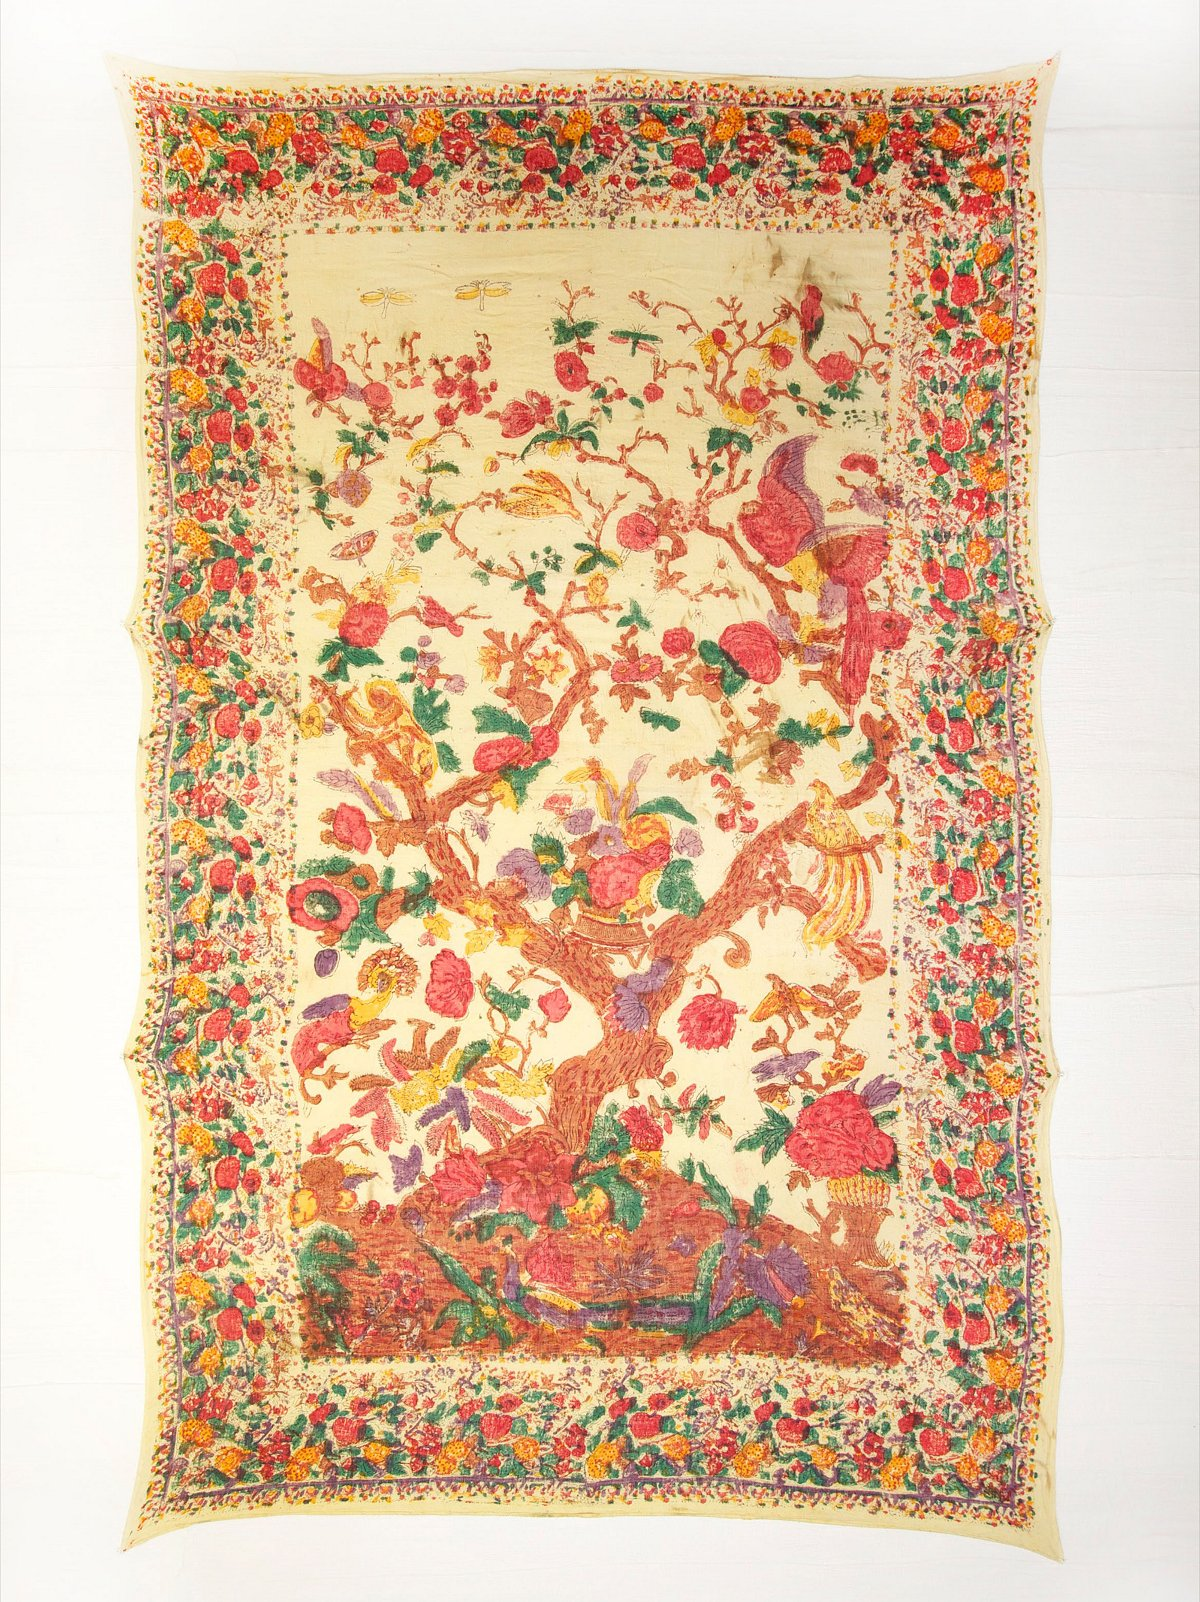 Vintage Hand Painted Tapestry